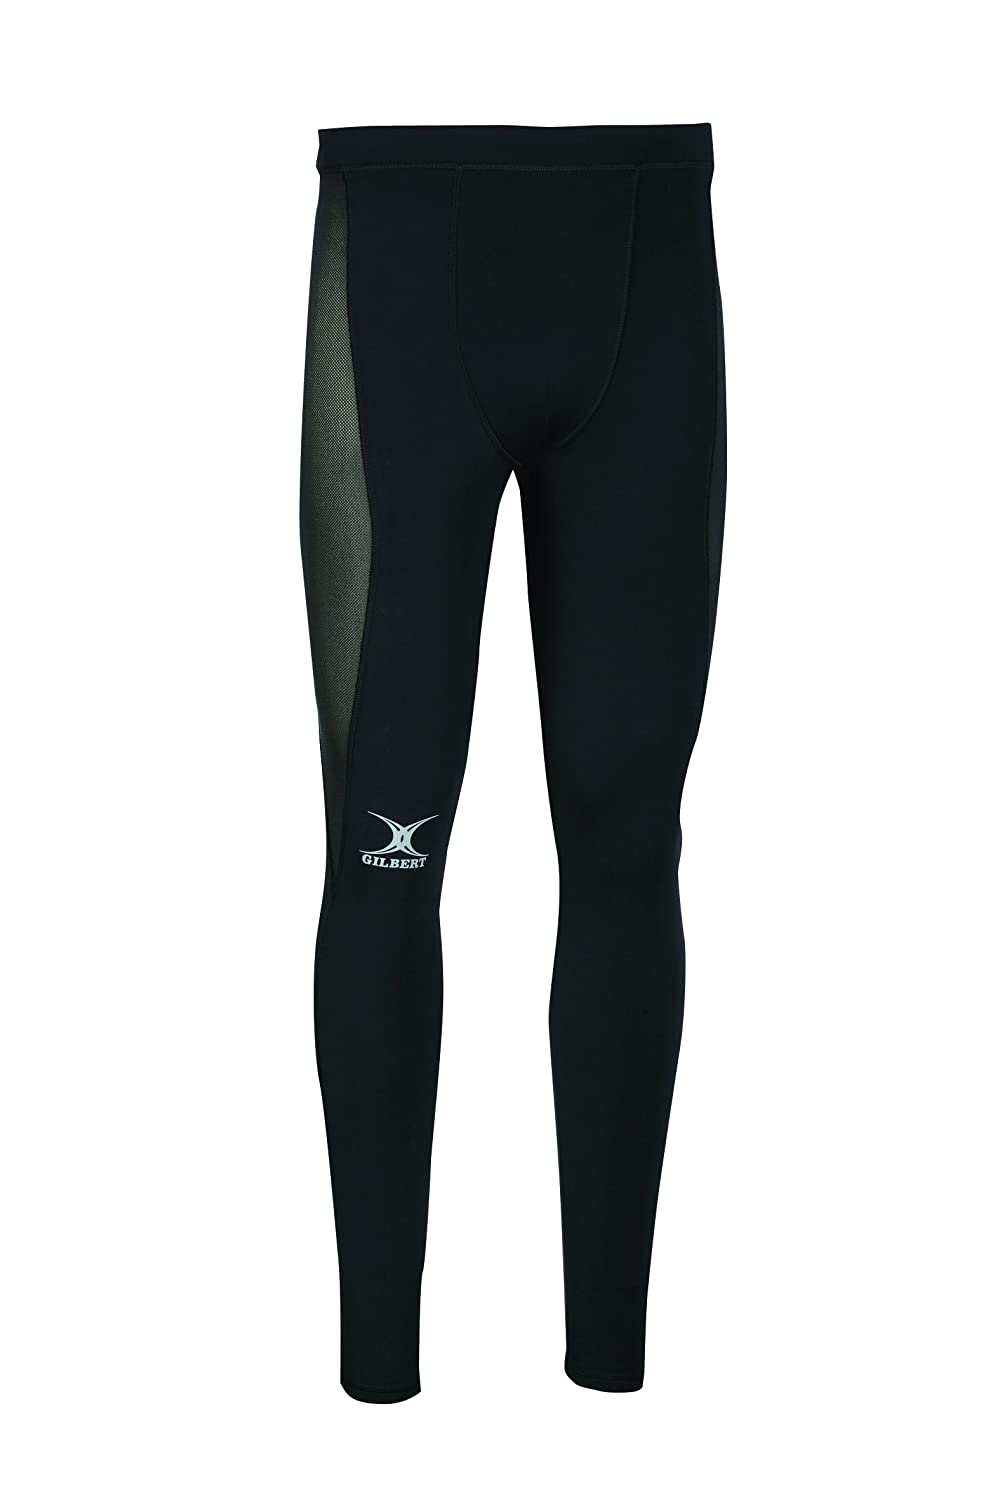 Gilbert Atomic Base Layer, Leggings Uomo Grays 2291